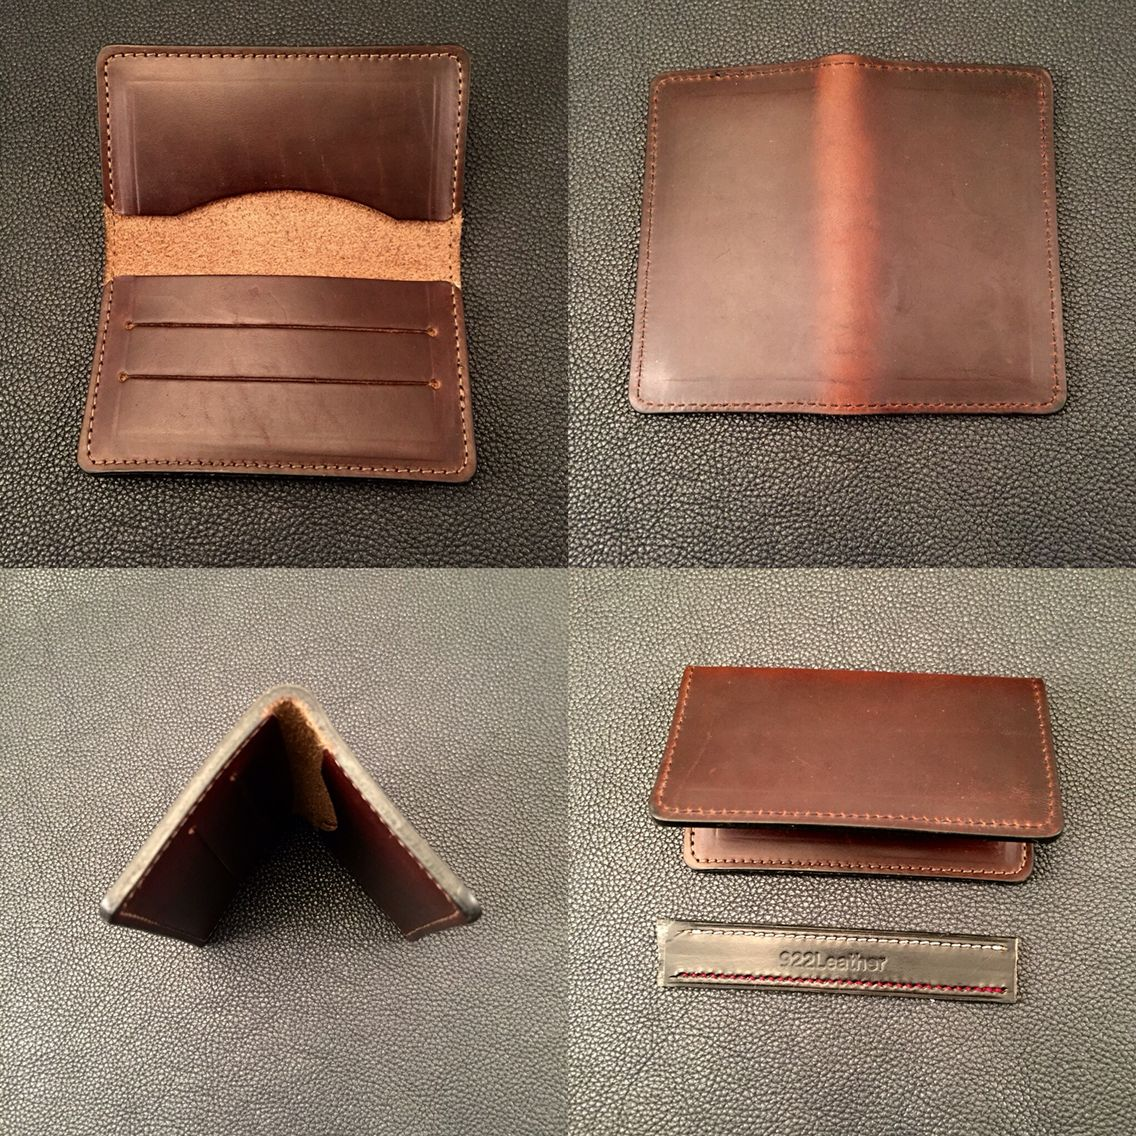 Horween Chromexcel leather micro wallets for graduation gifts from 922Leather.com #techsew #watchstraps #leathercraft #leathergoods